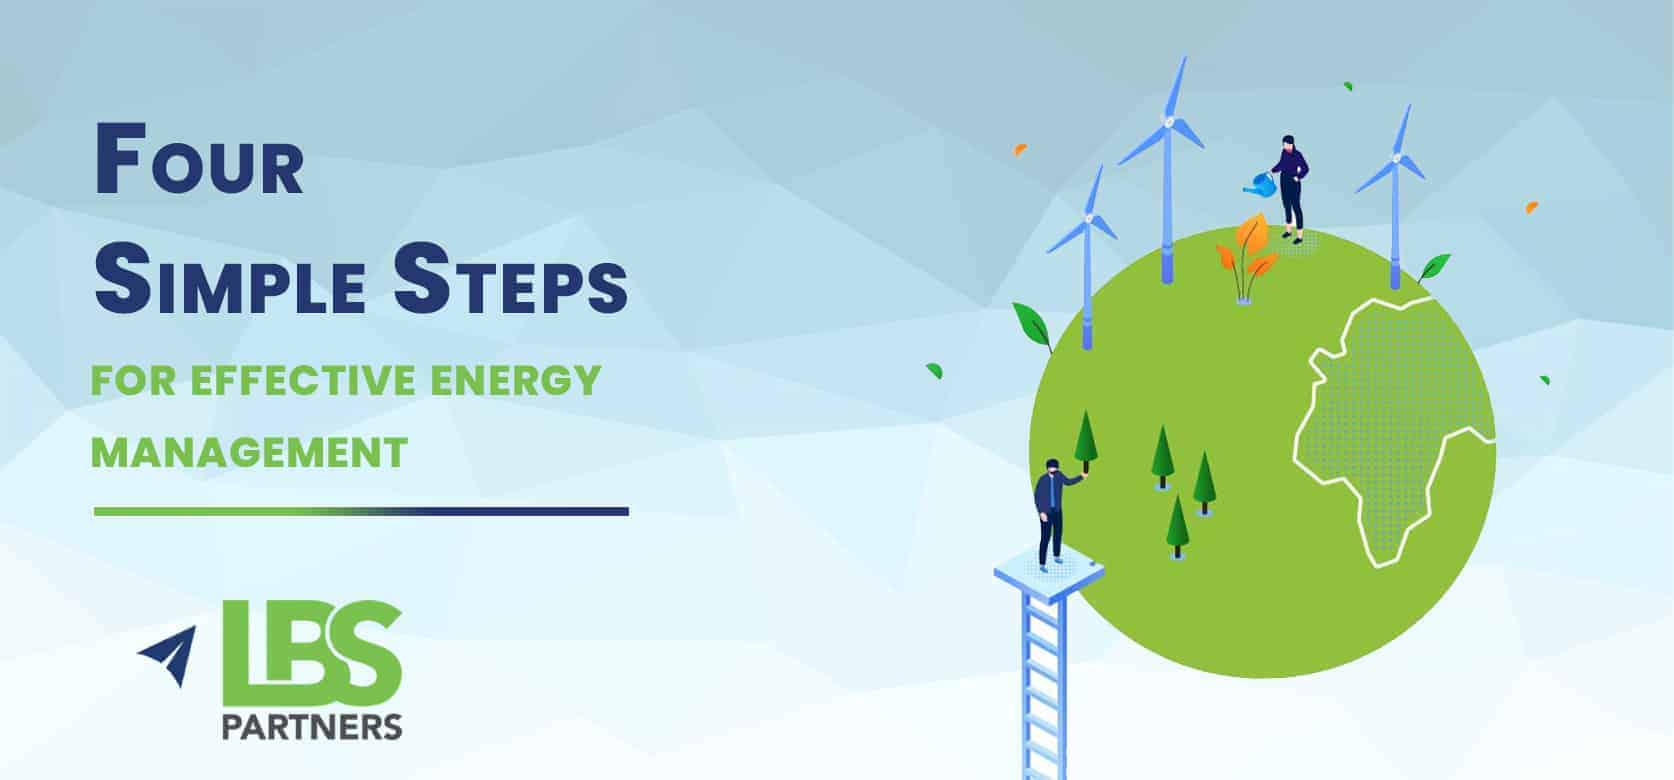 Four Simple Steps for Effective Energy Management